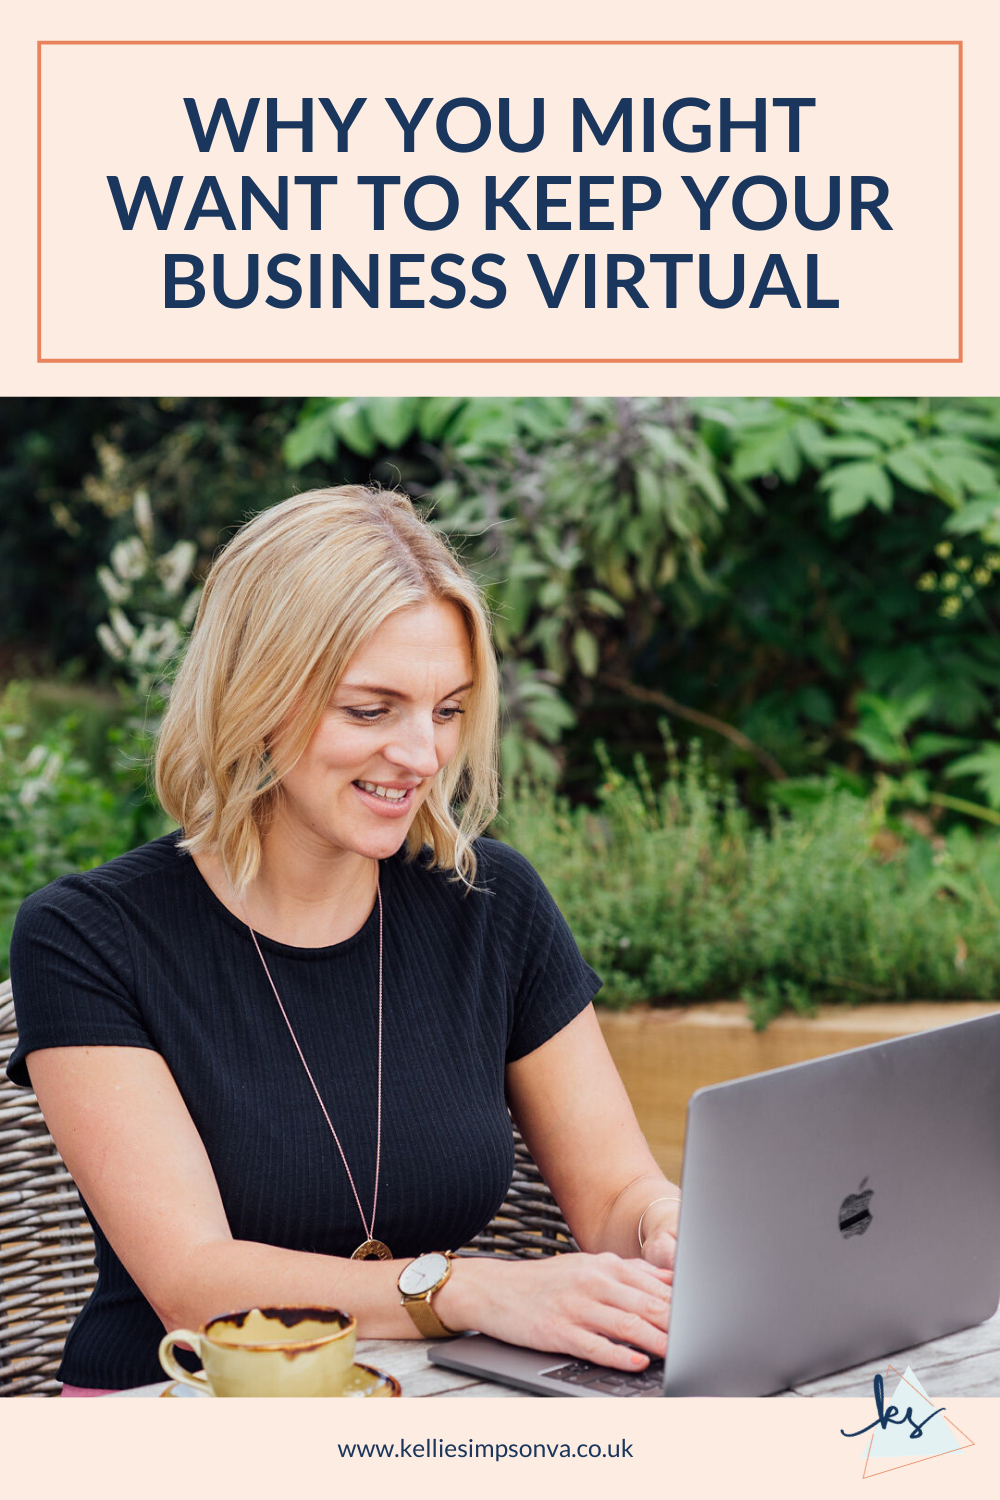 Why you might want to keep your business virtual